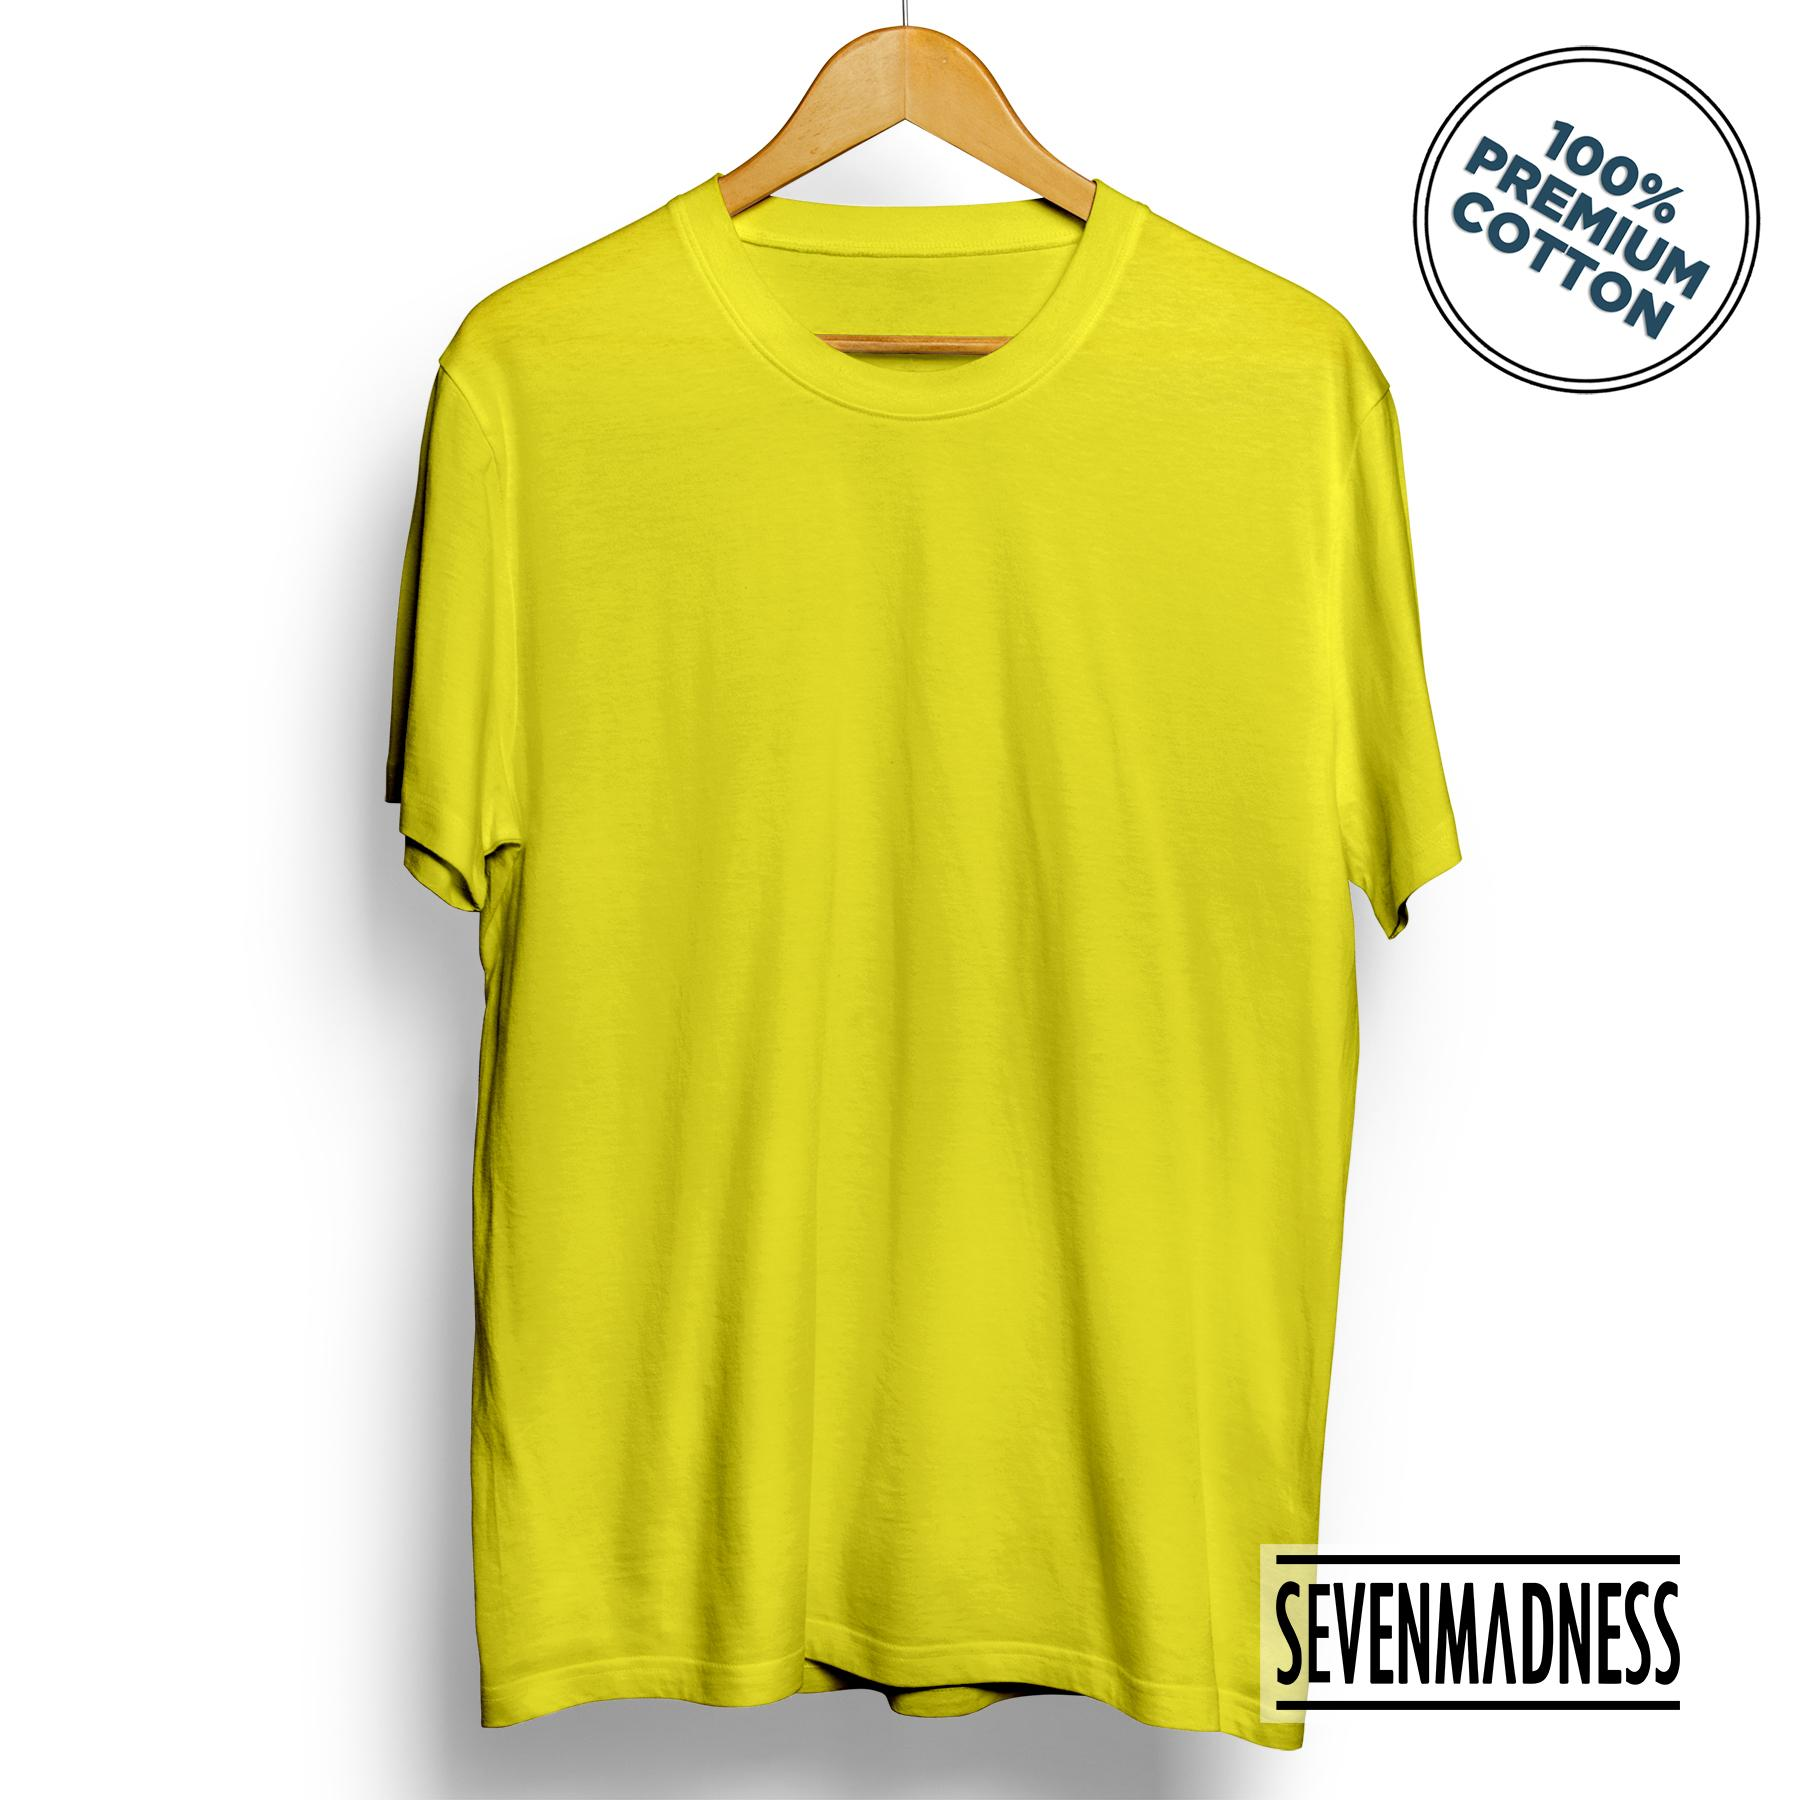 Buy Sell Cheapest Yellow Cotton Kaos Best Quality Product Deals Polos Basic Unisex Pria Wanita Premium Combed Tshirt